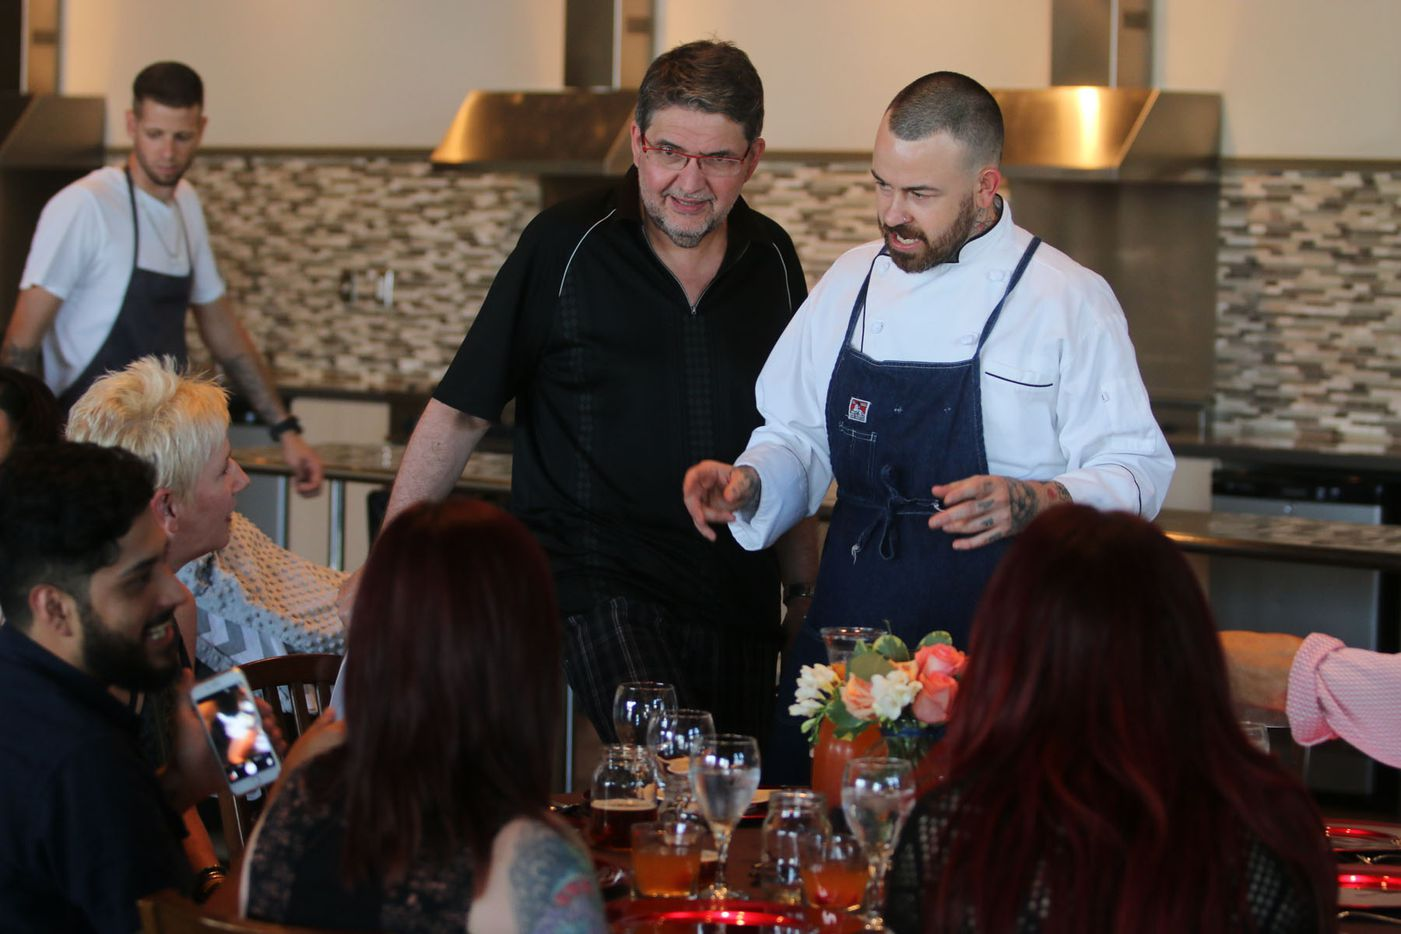 Chef Justin Box chats with guests to his summer pop up dinner Summer Shenanigans at 3015 in Trinity Groves on July 26,2015.